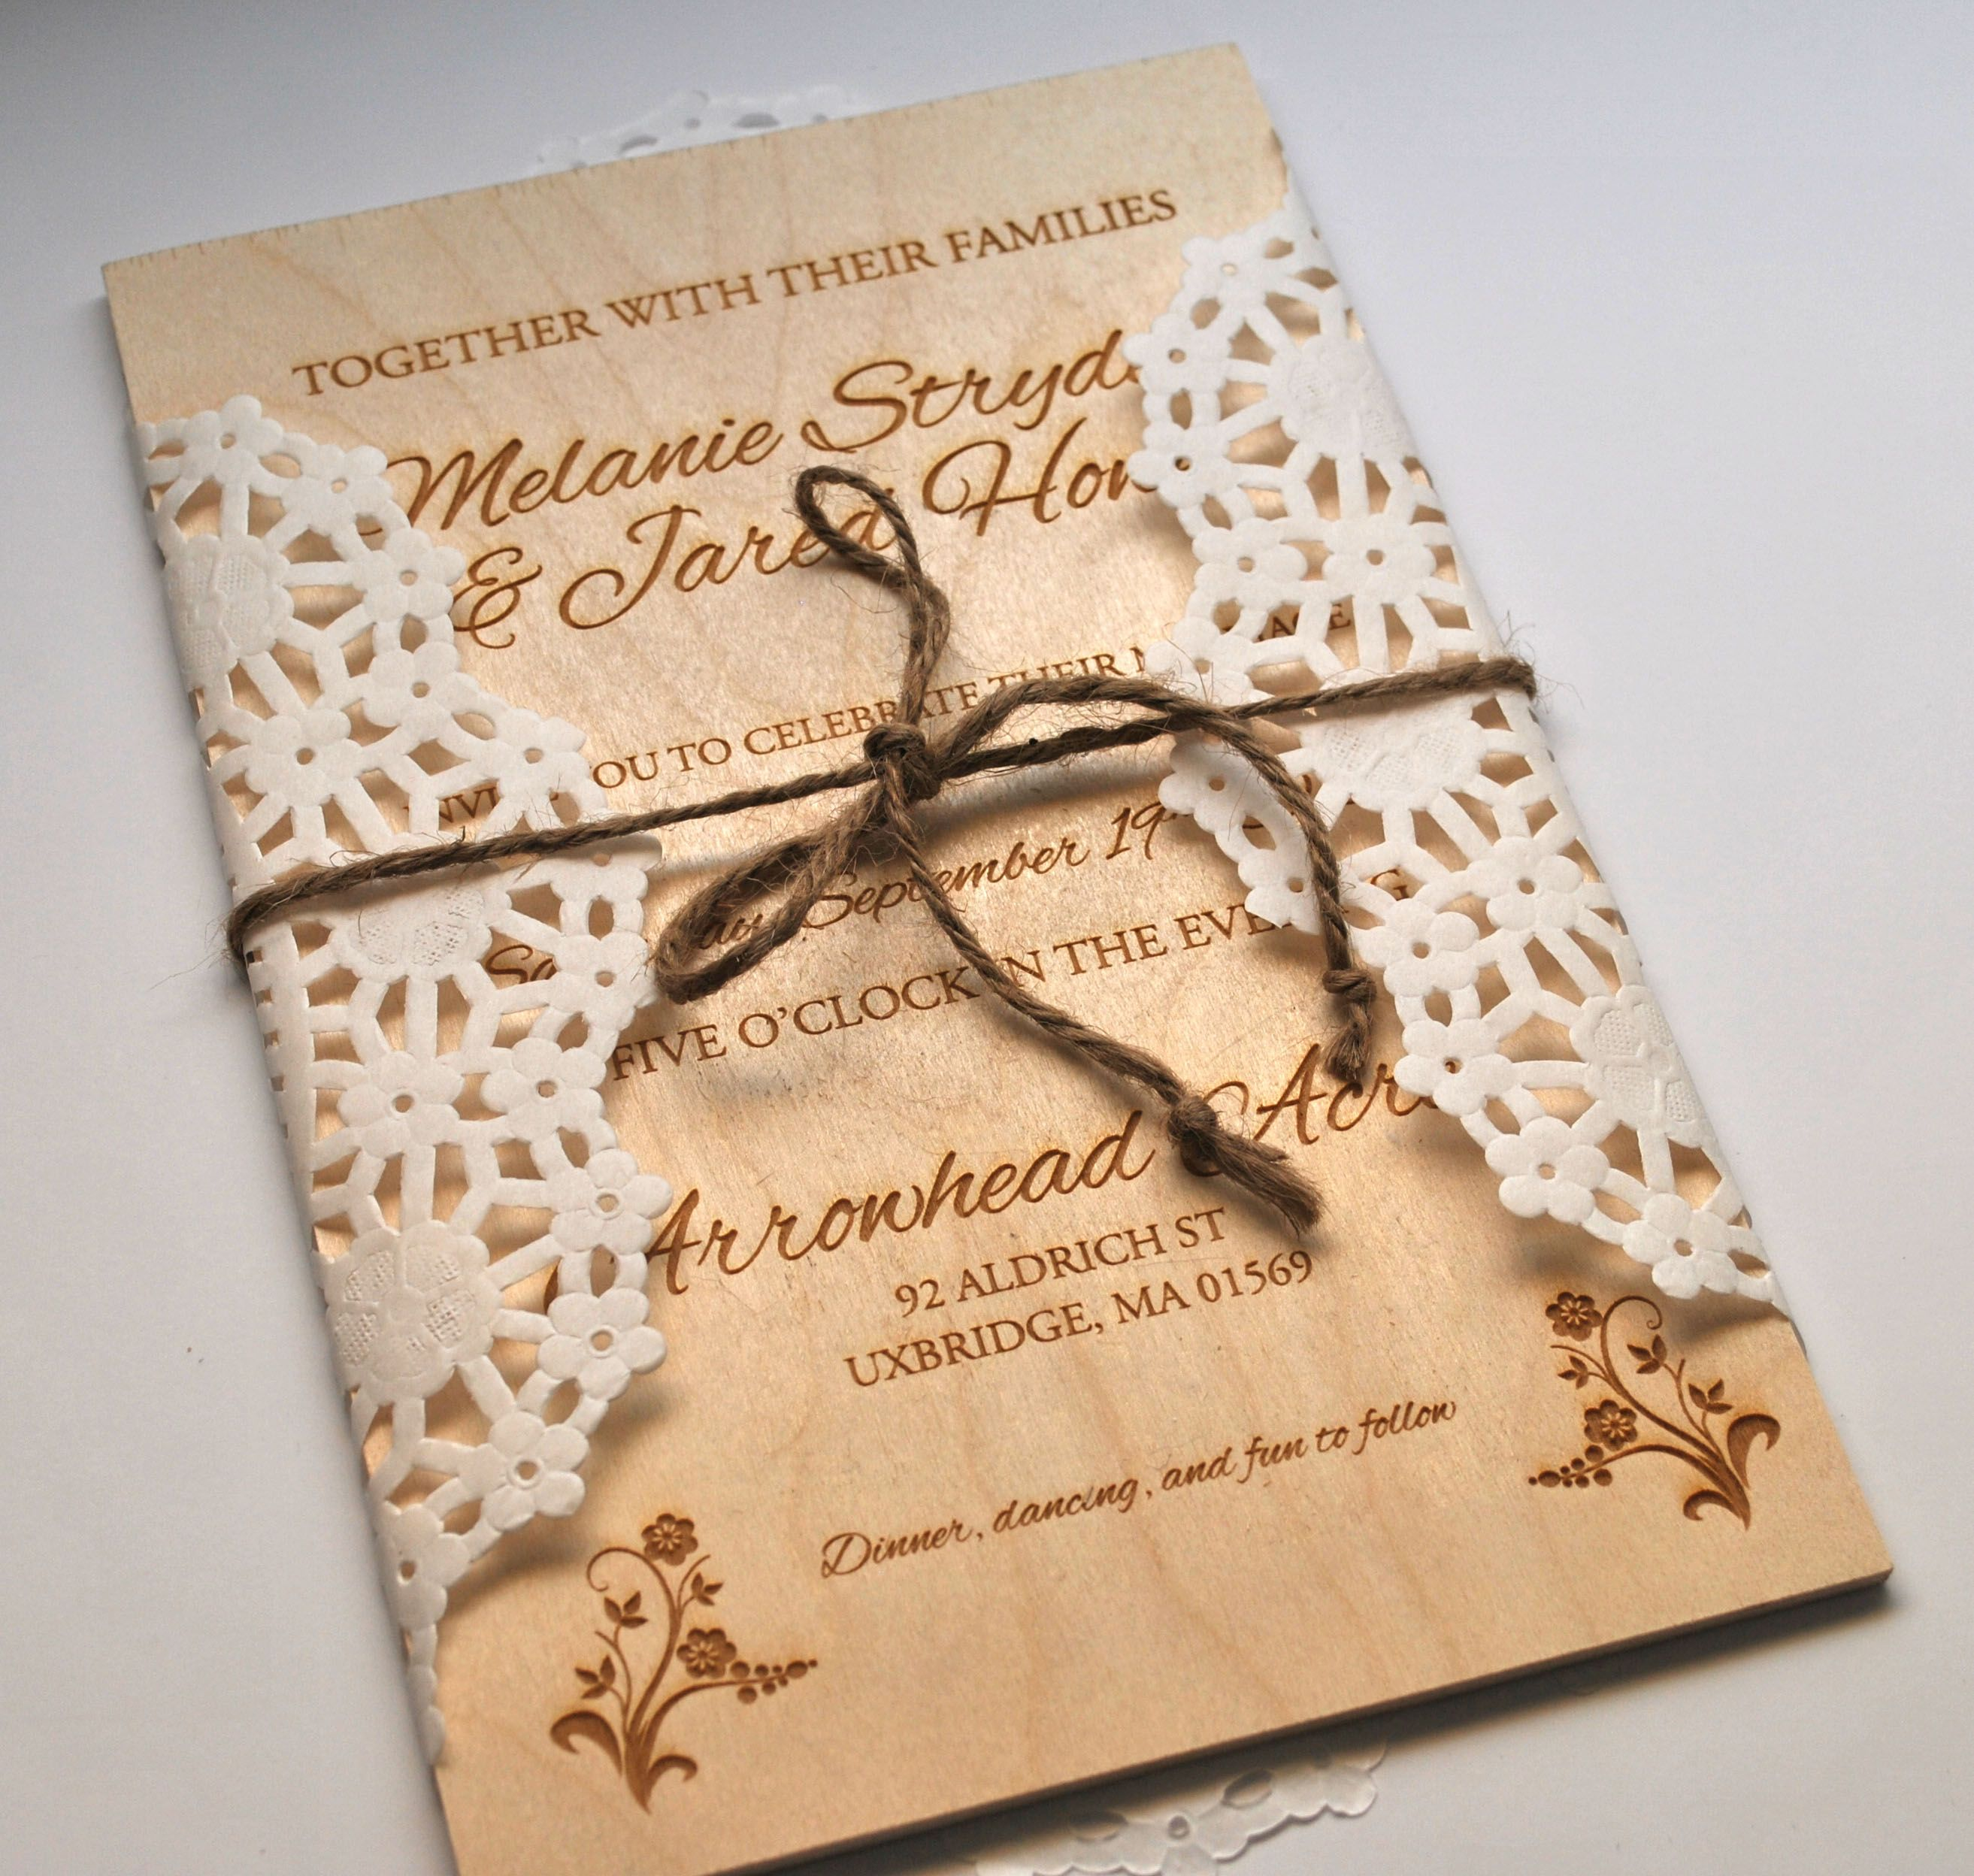 Attractive Laser Engraved Wedding Invitation On Thin Wooden Board.